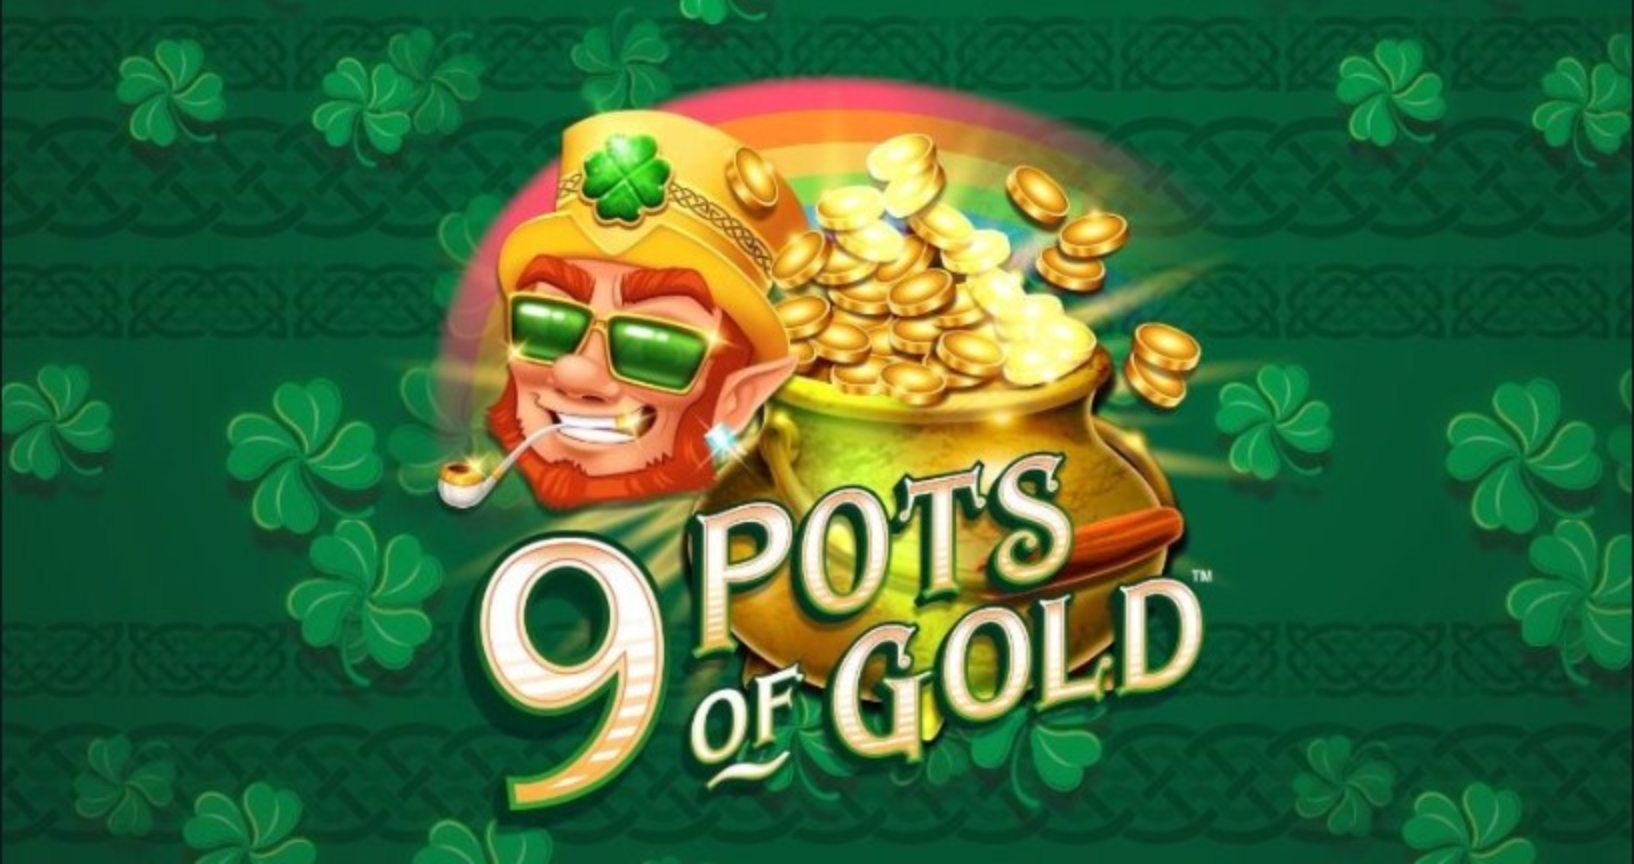 The 9 Pots of Gold Online Slot Demo Game by Gameburger Studios